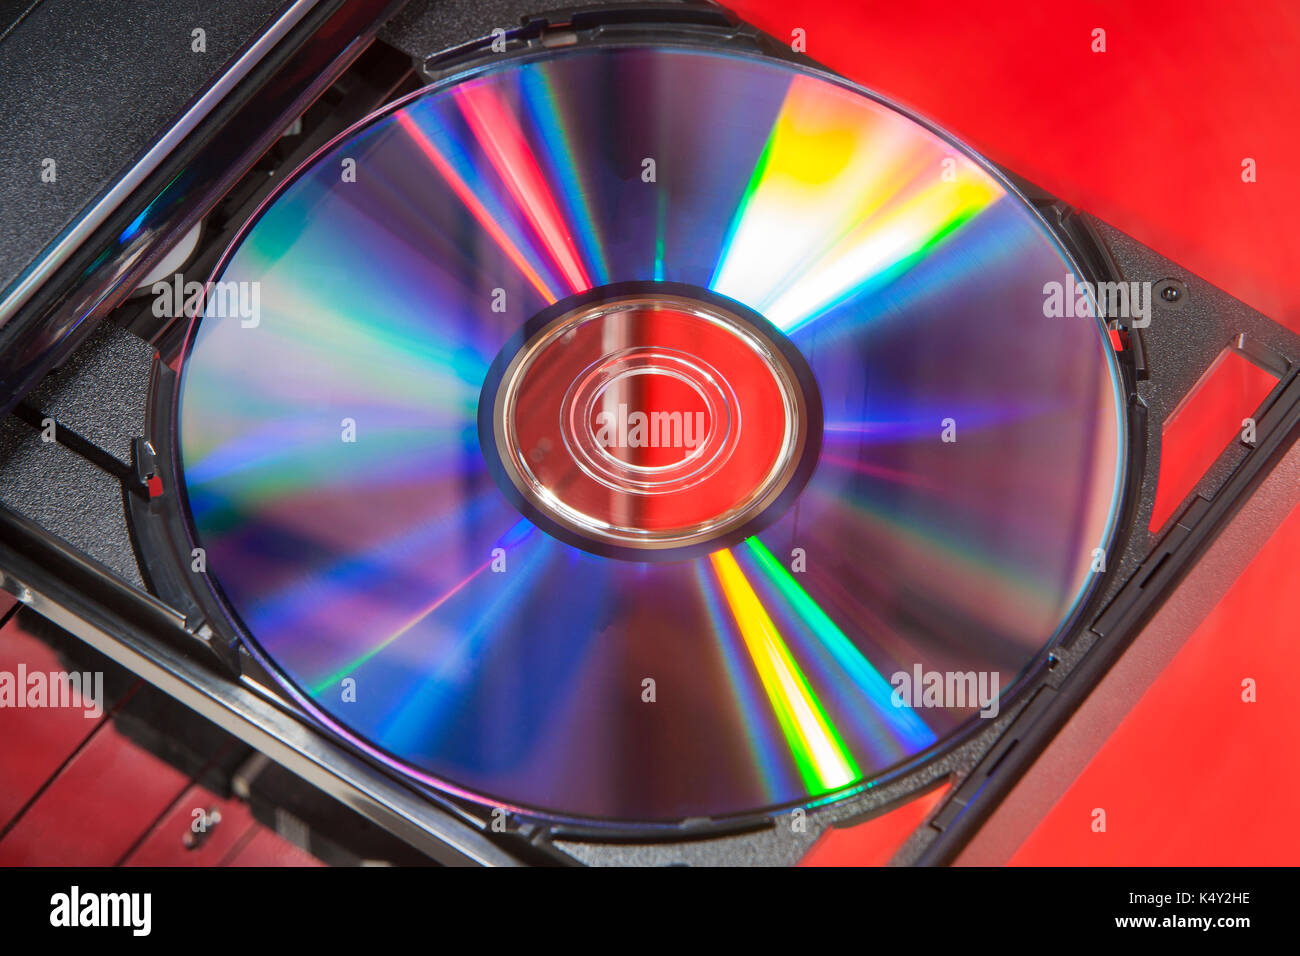 DVD disc in player of a desktop computer with a red background - Stock Image